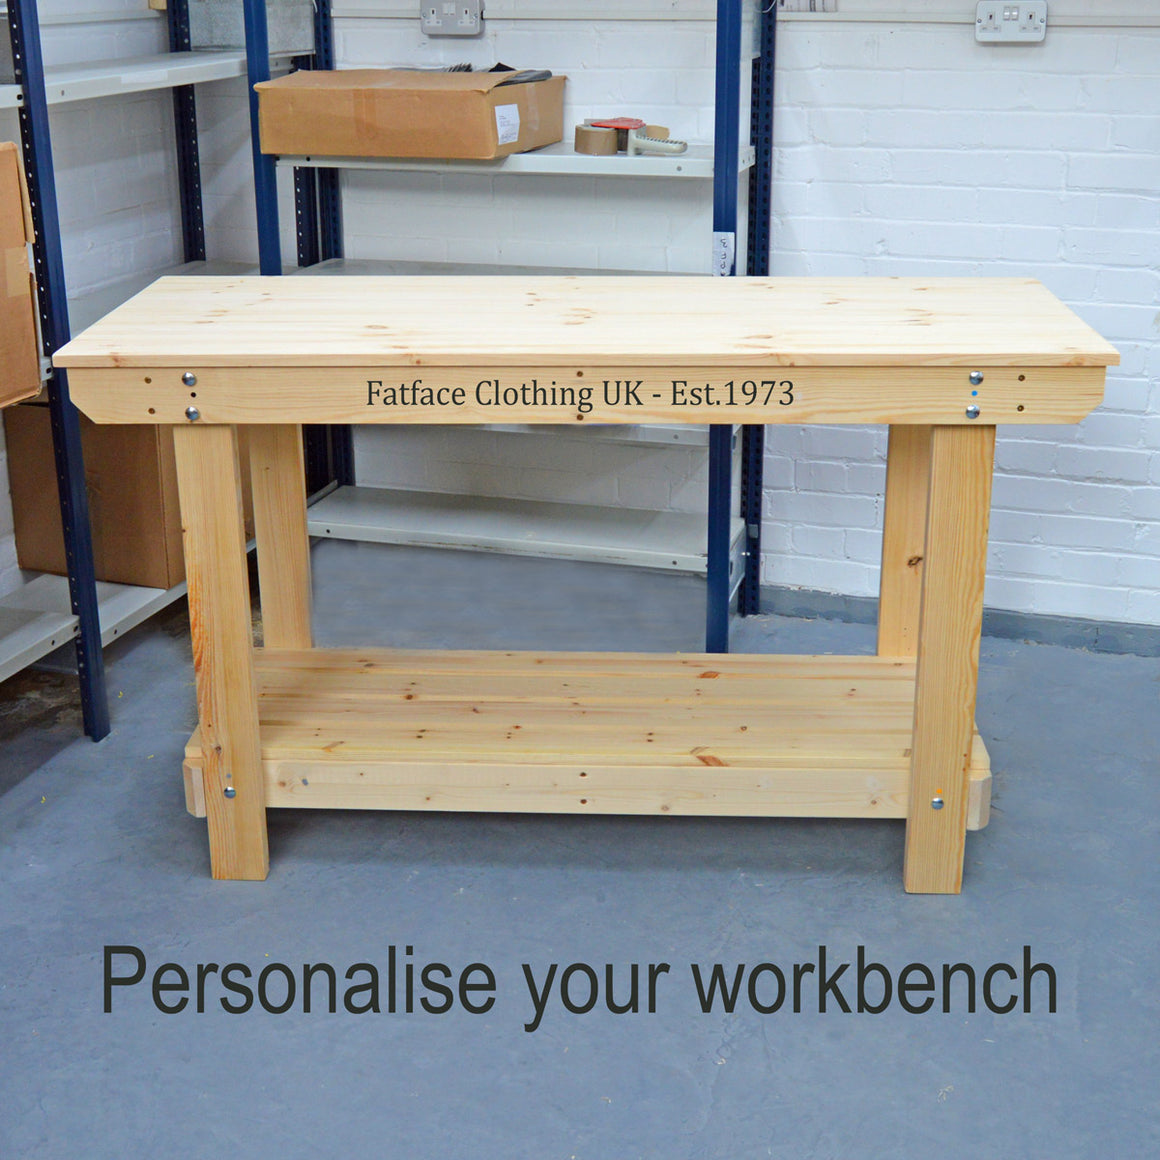 Personalise your workbench or potting table with printed text